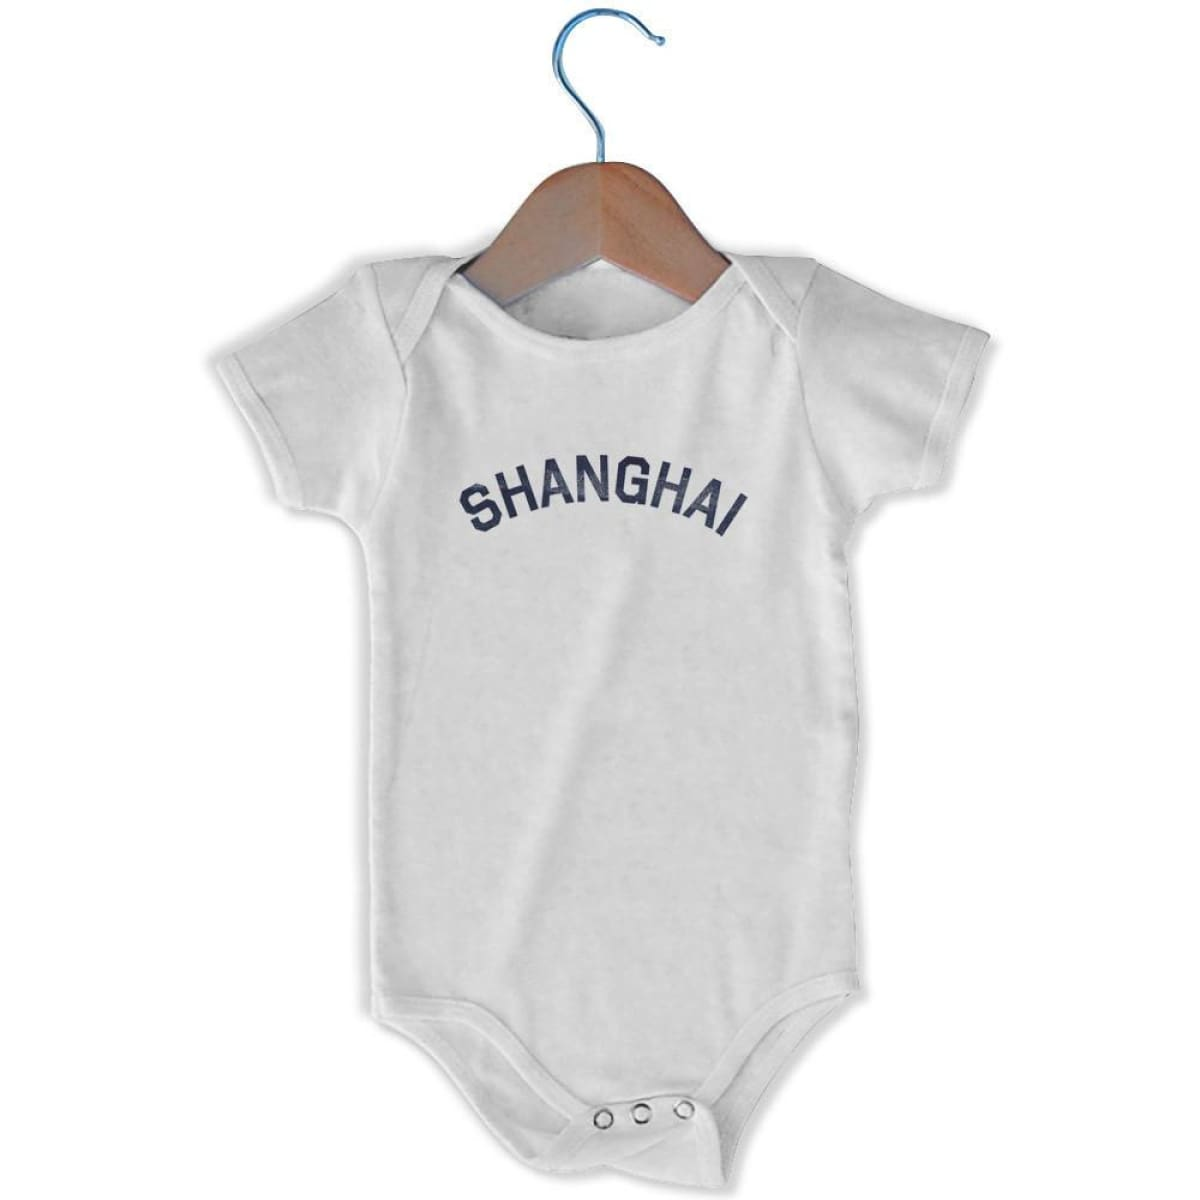 Shanghai City Infant Onesie - White / 6 - 9 Months - Mile End City